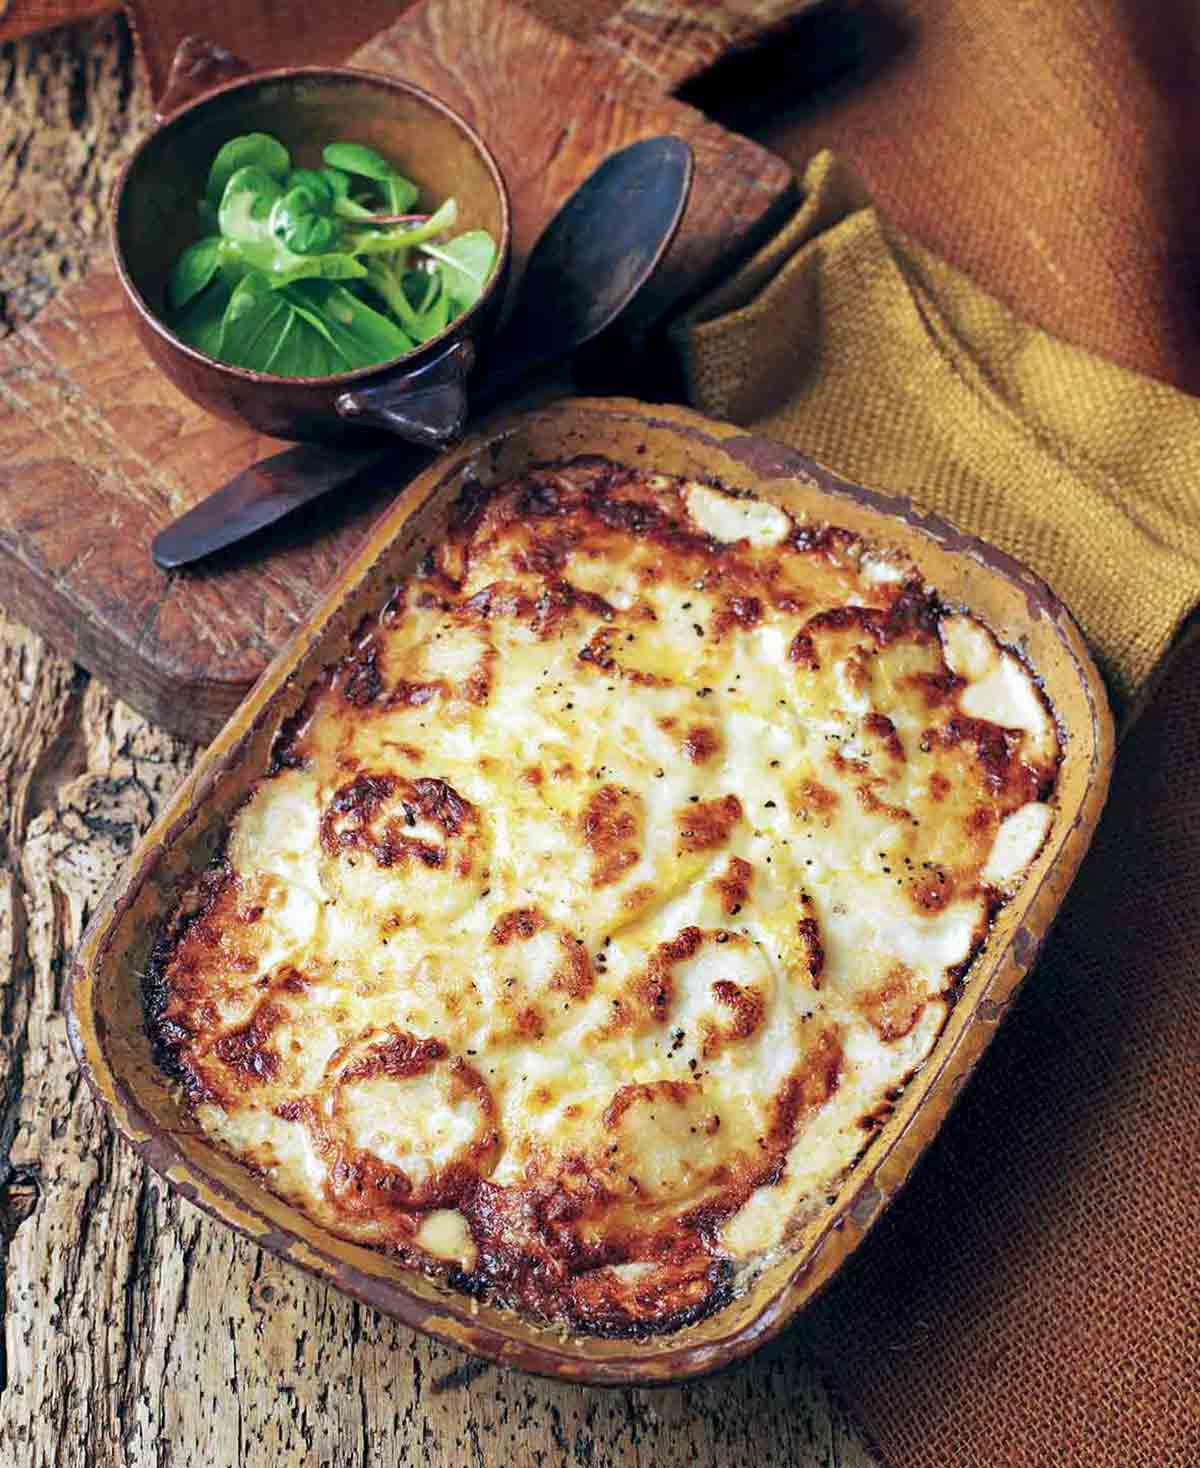 Casserole dish of root vegetable gratin topped with bubbly brown cheese on wood table